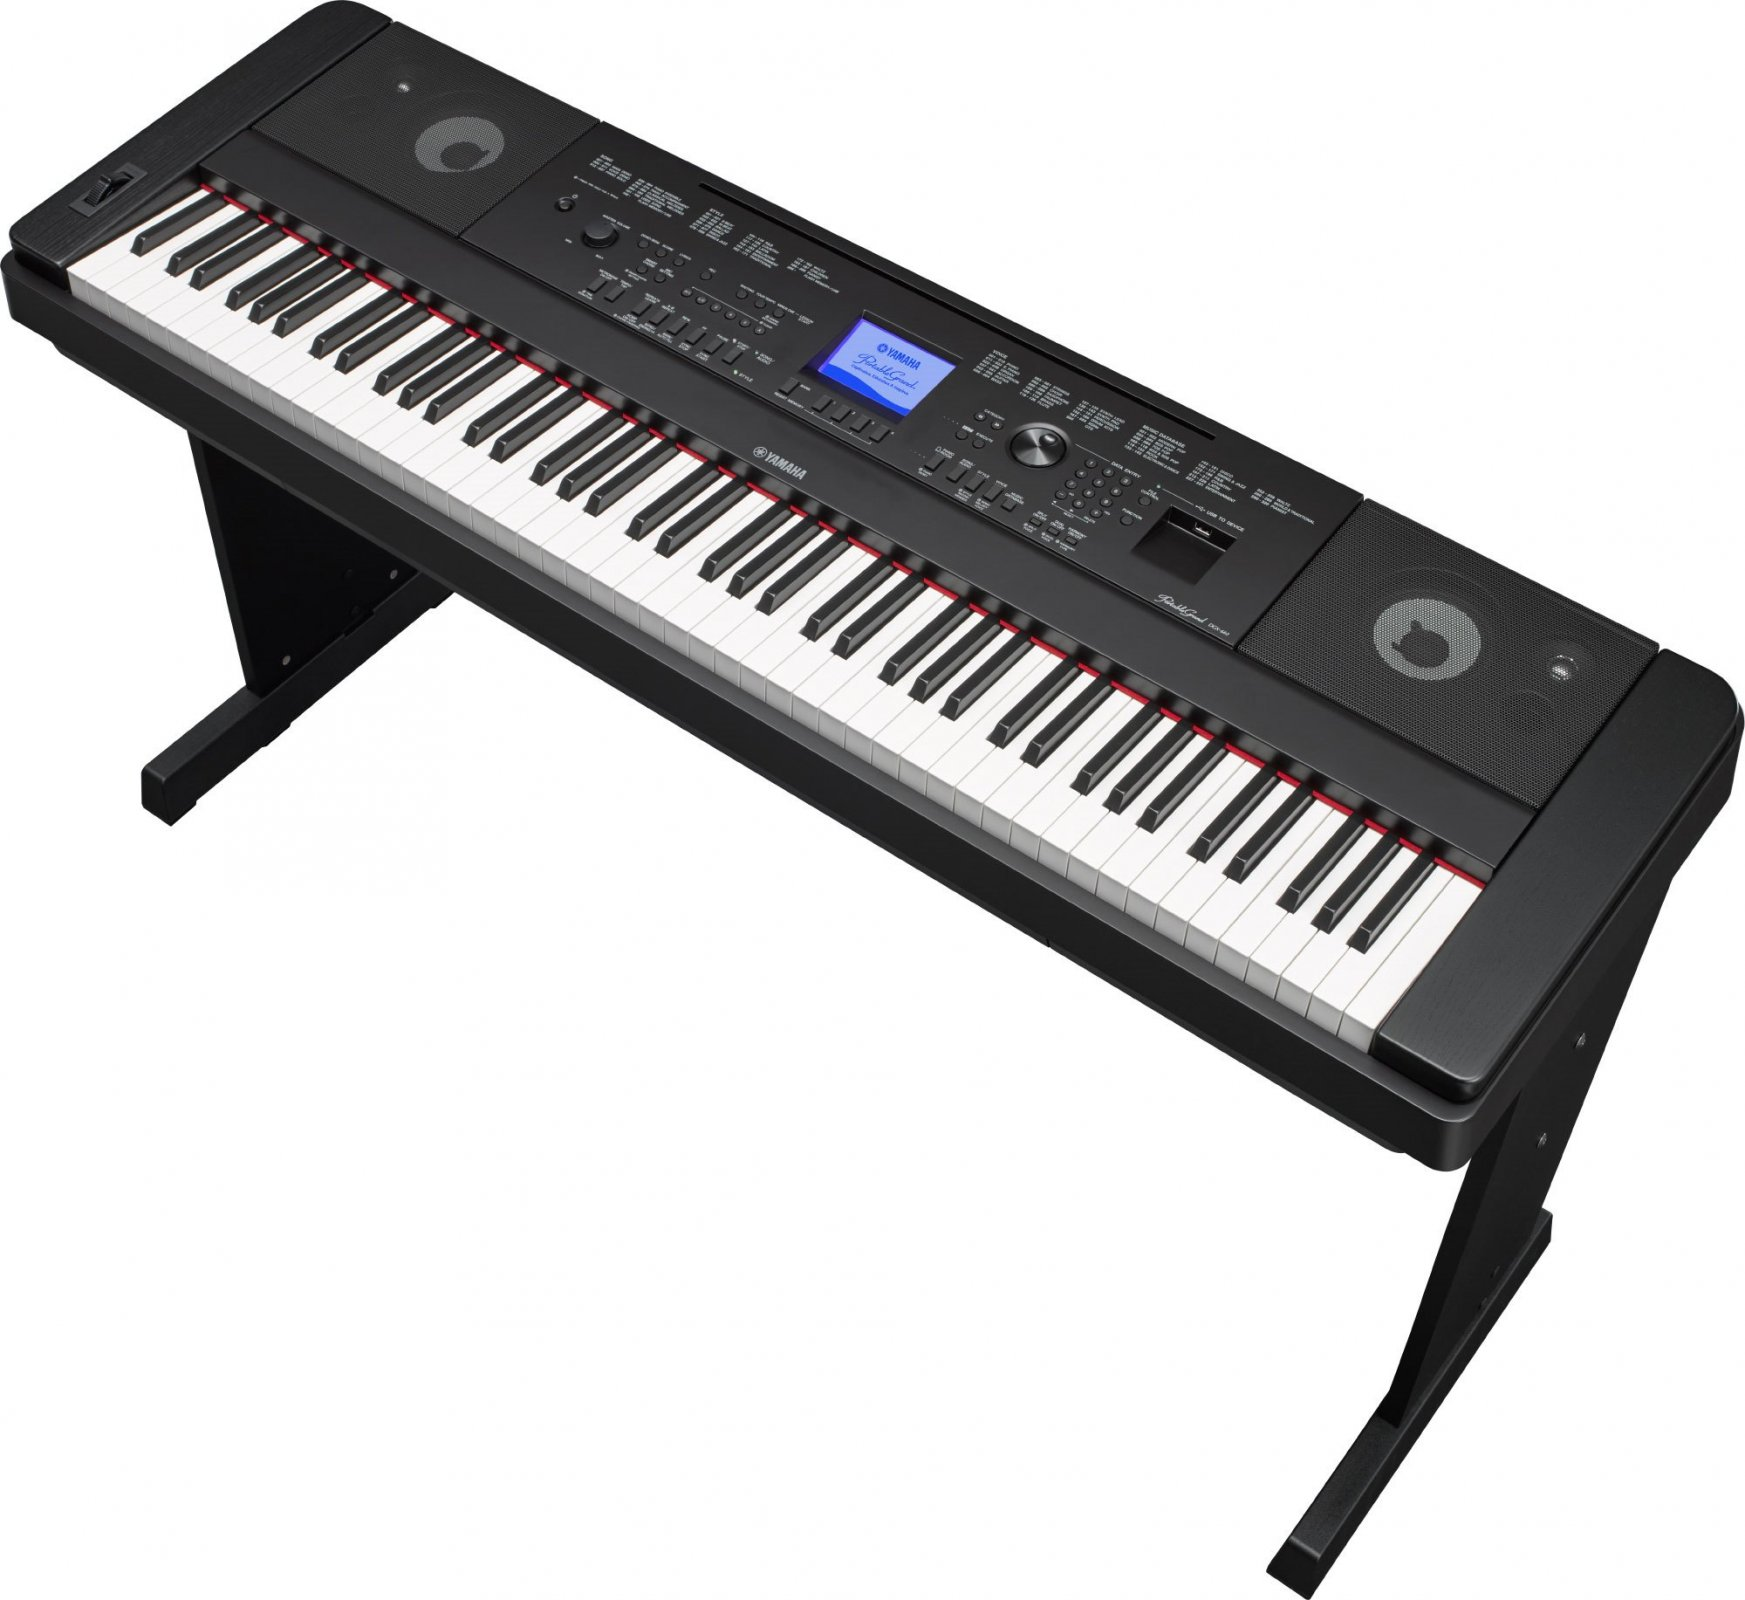 Yamaha DGX660B 88-key Portable Grand Digital Piano, Black